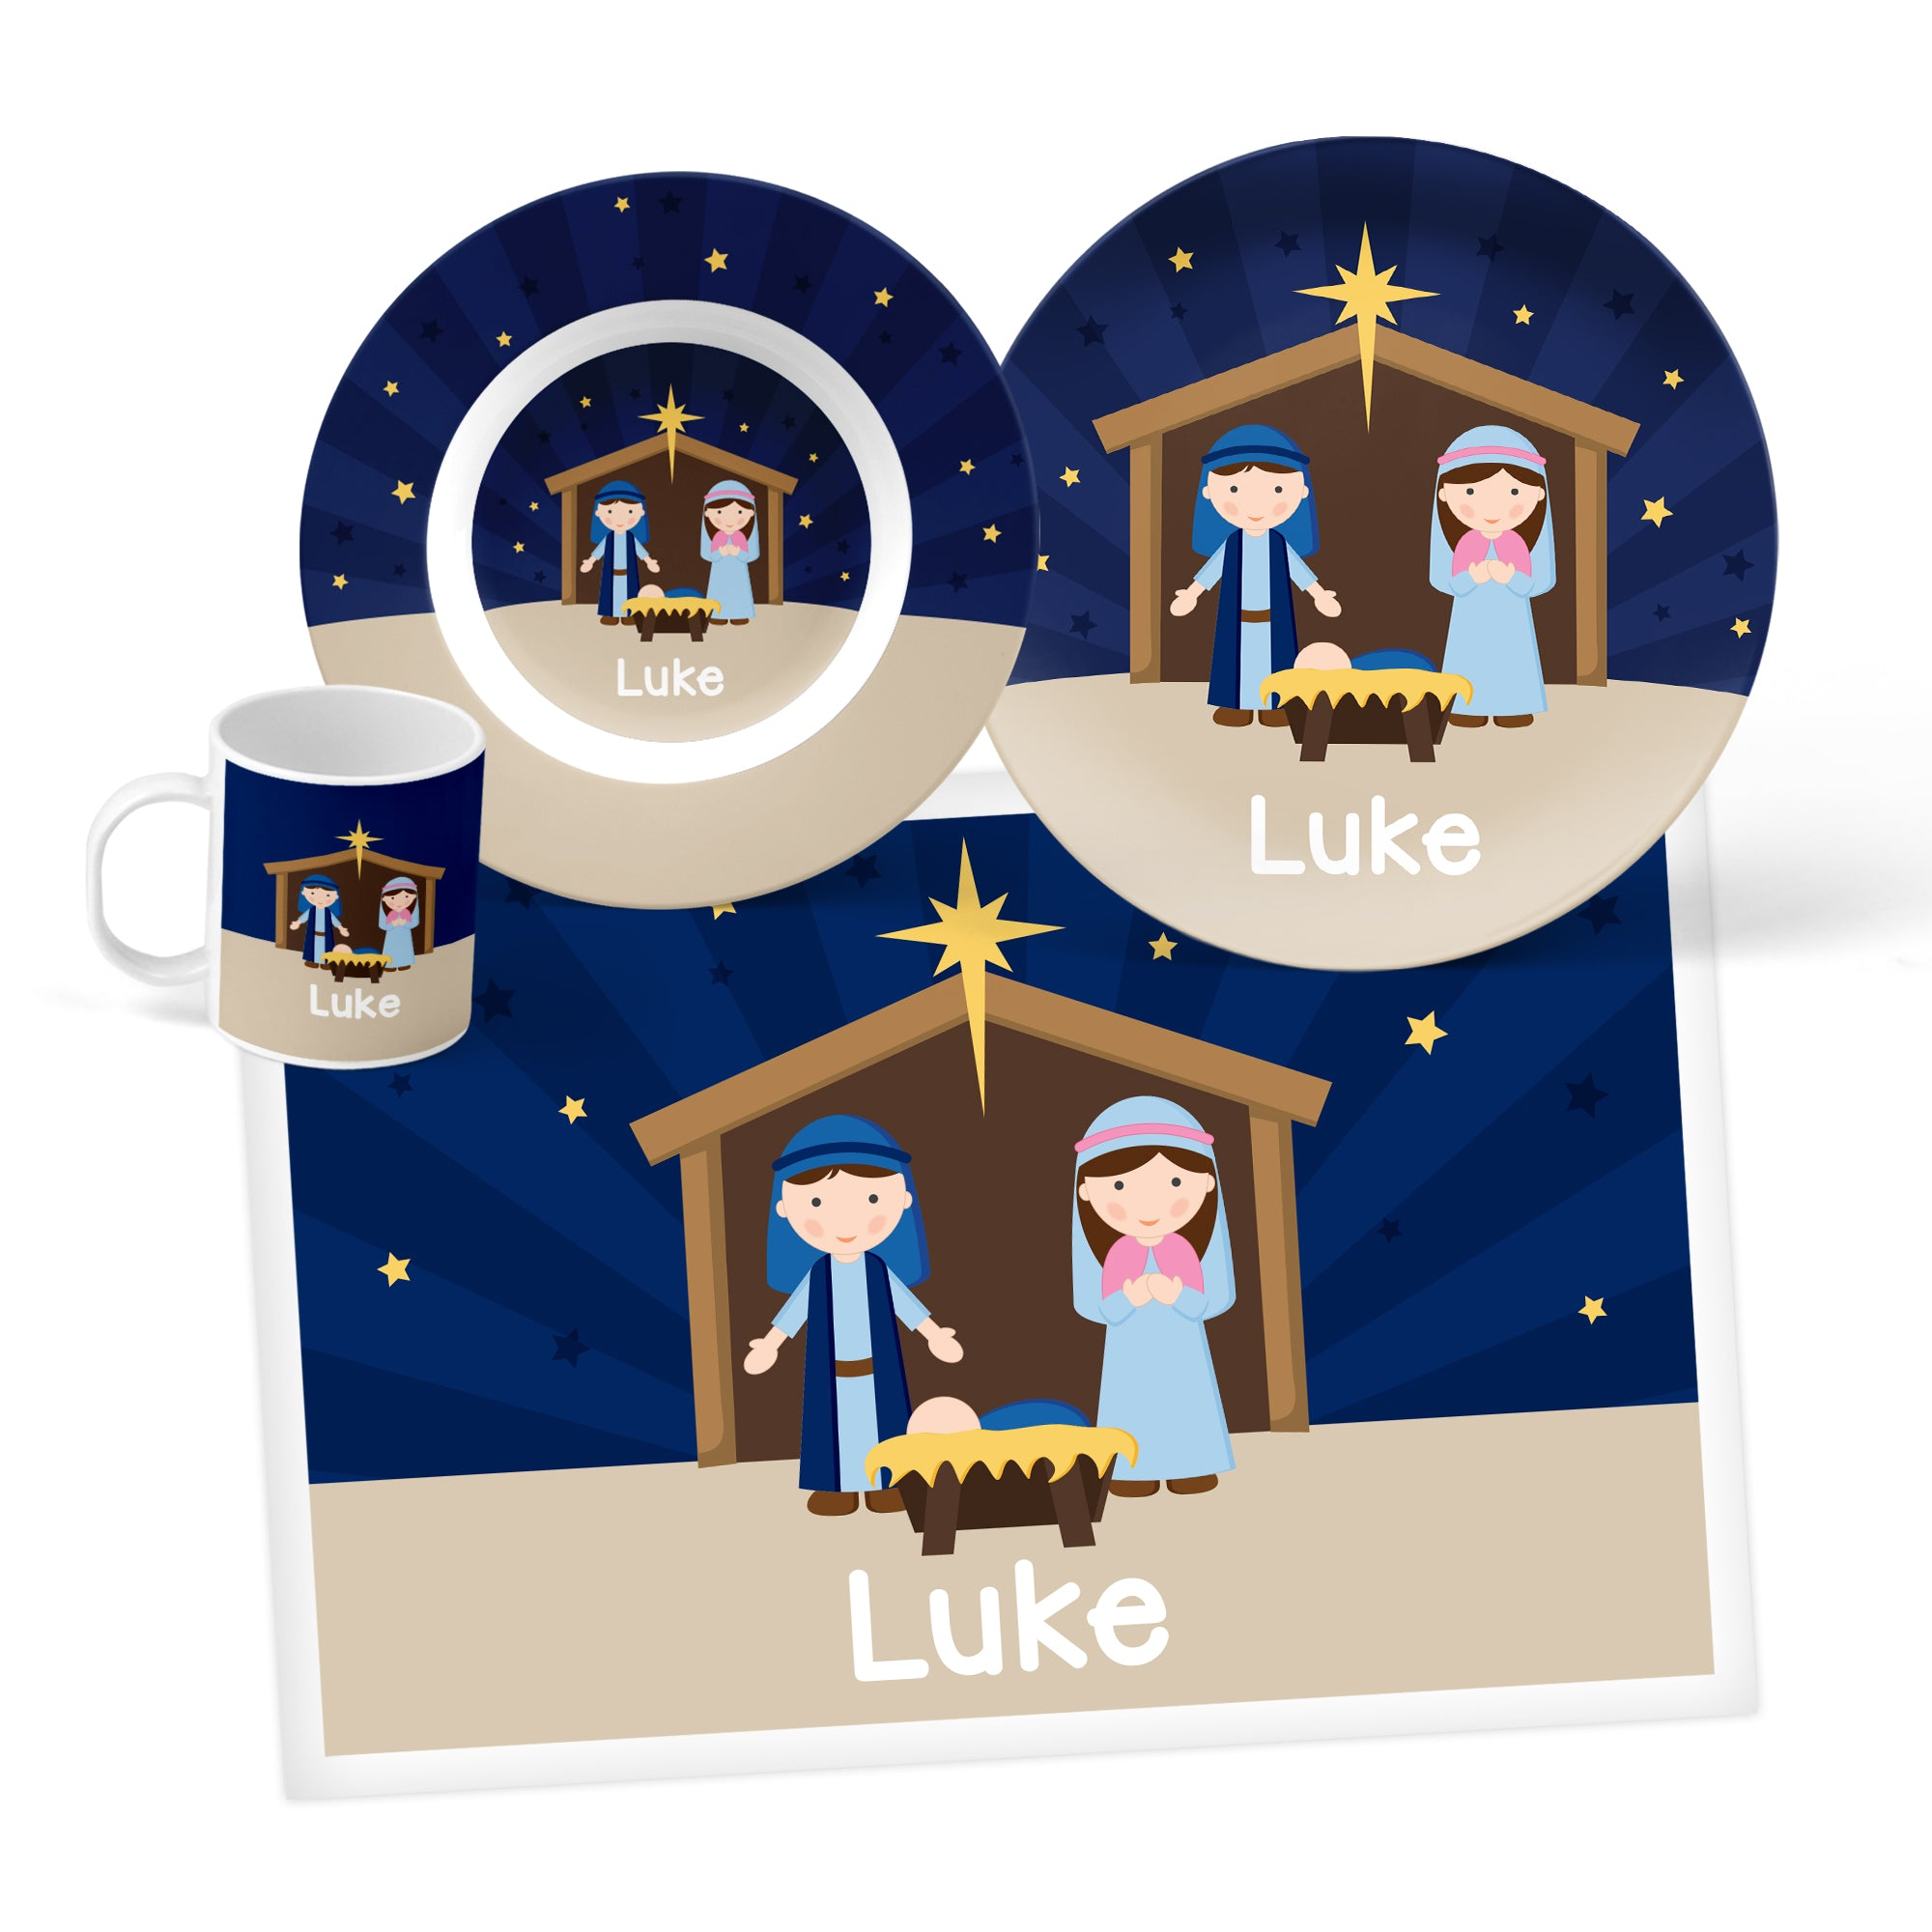 Nativity Personalized Mealtime Set